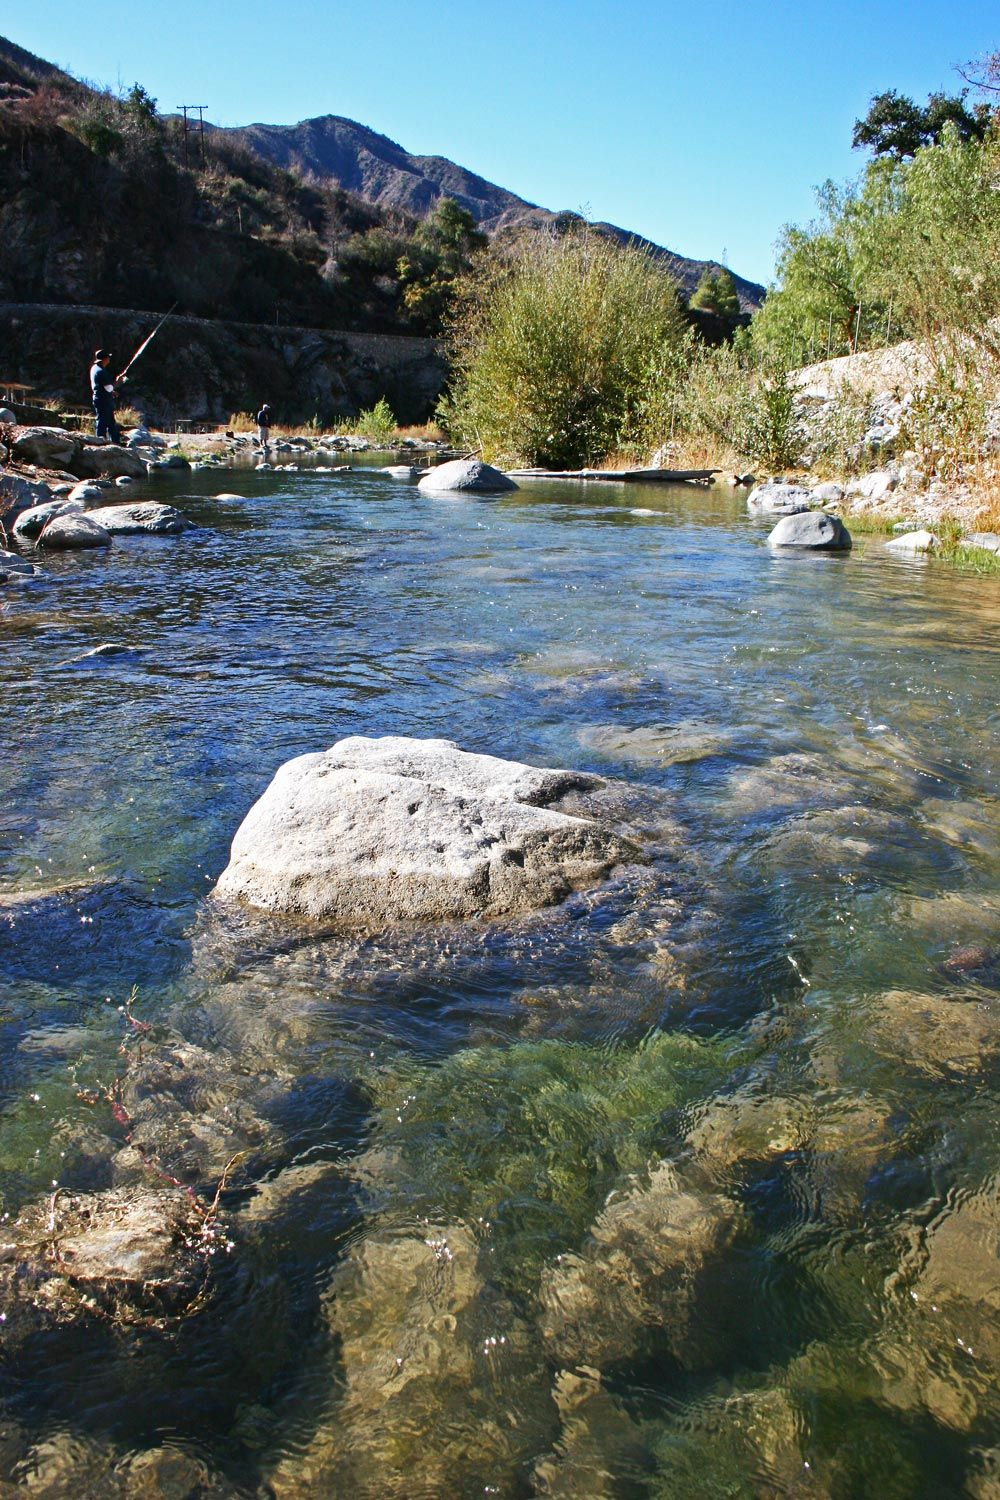 The East Fork of the San Gabriel River is a great fishing spot near our RV Resort.